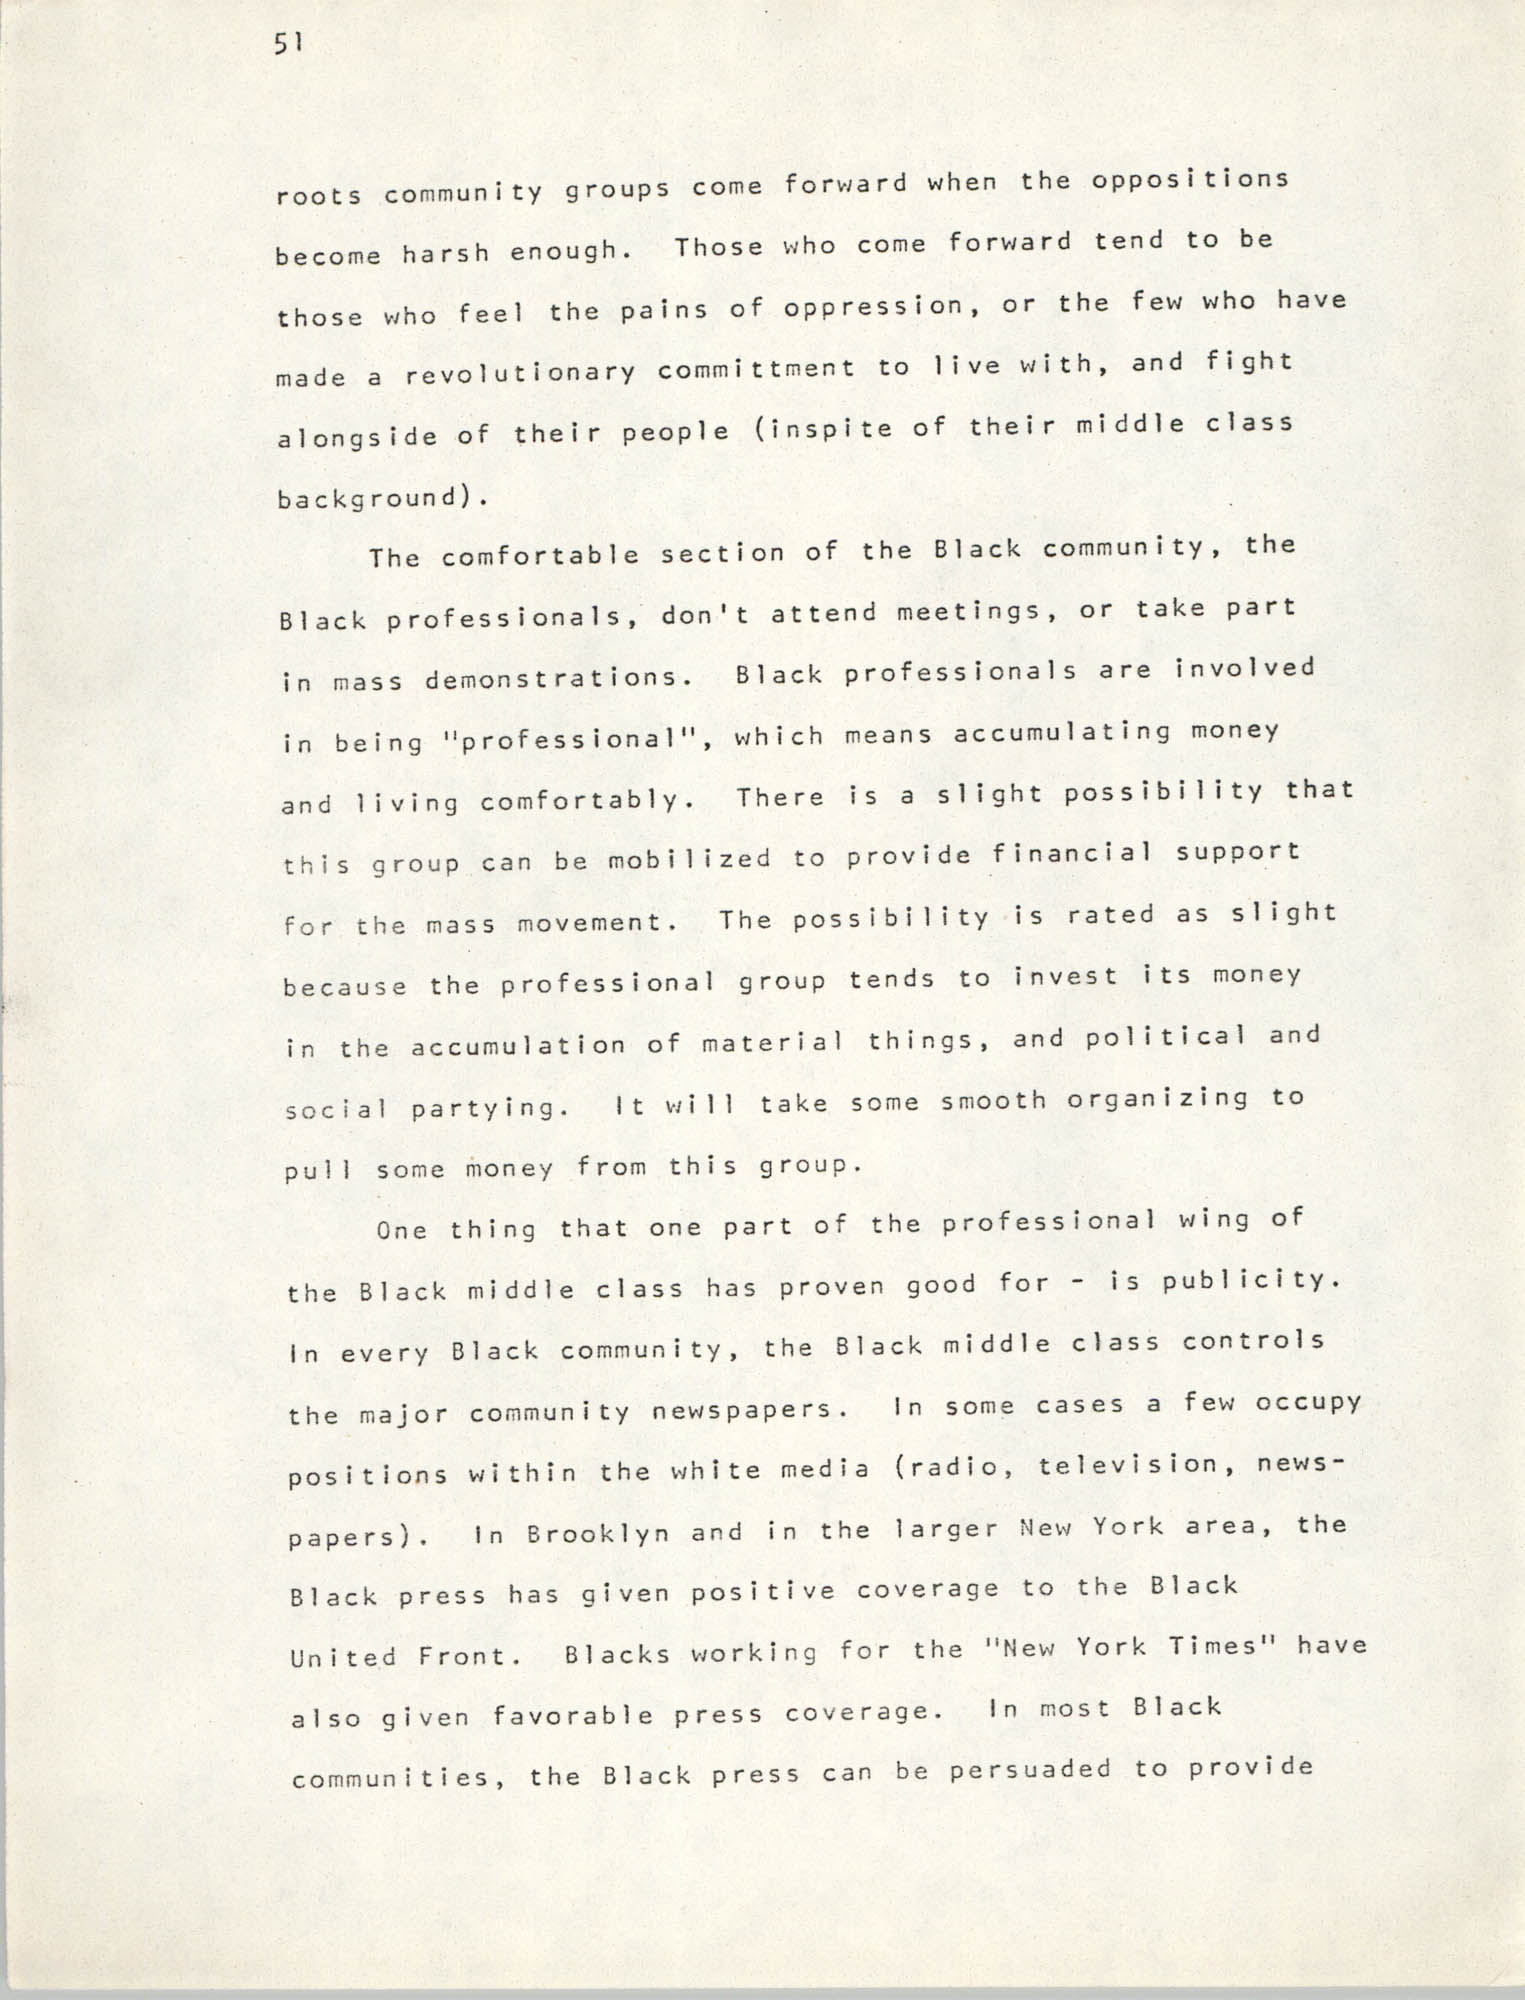 Pan-African Committee of the Black United Front, Page 51